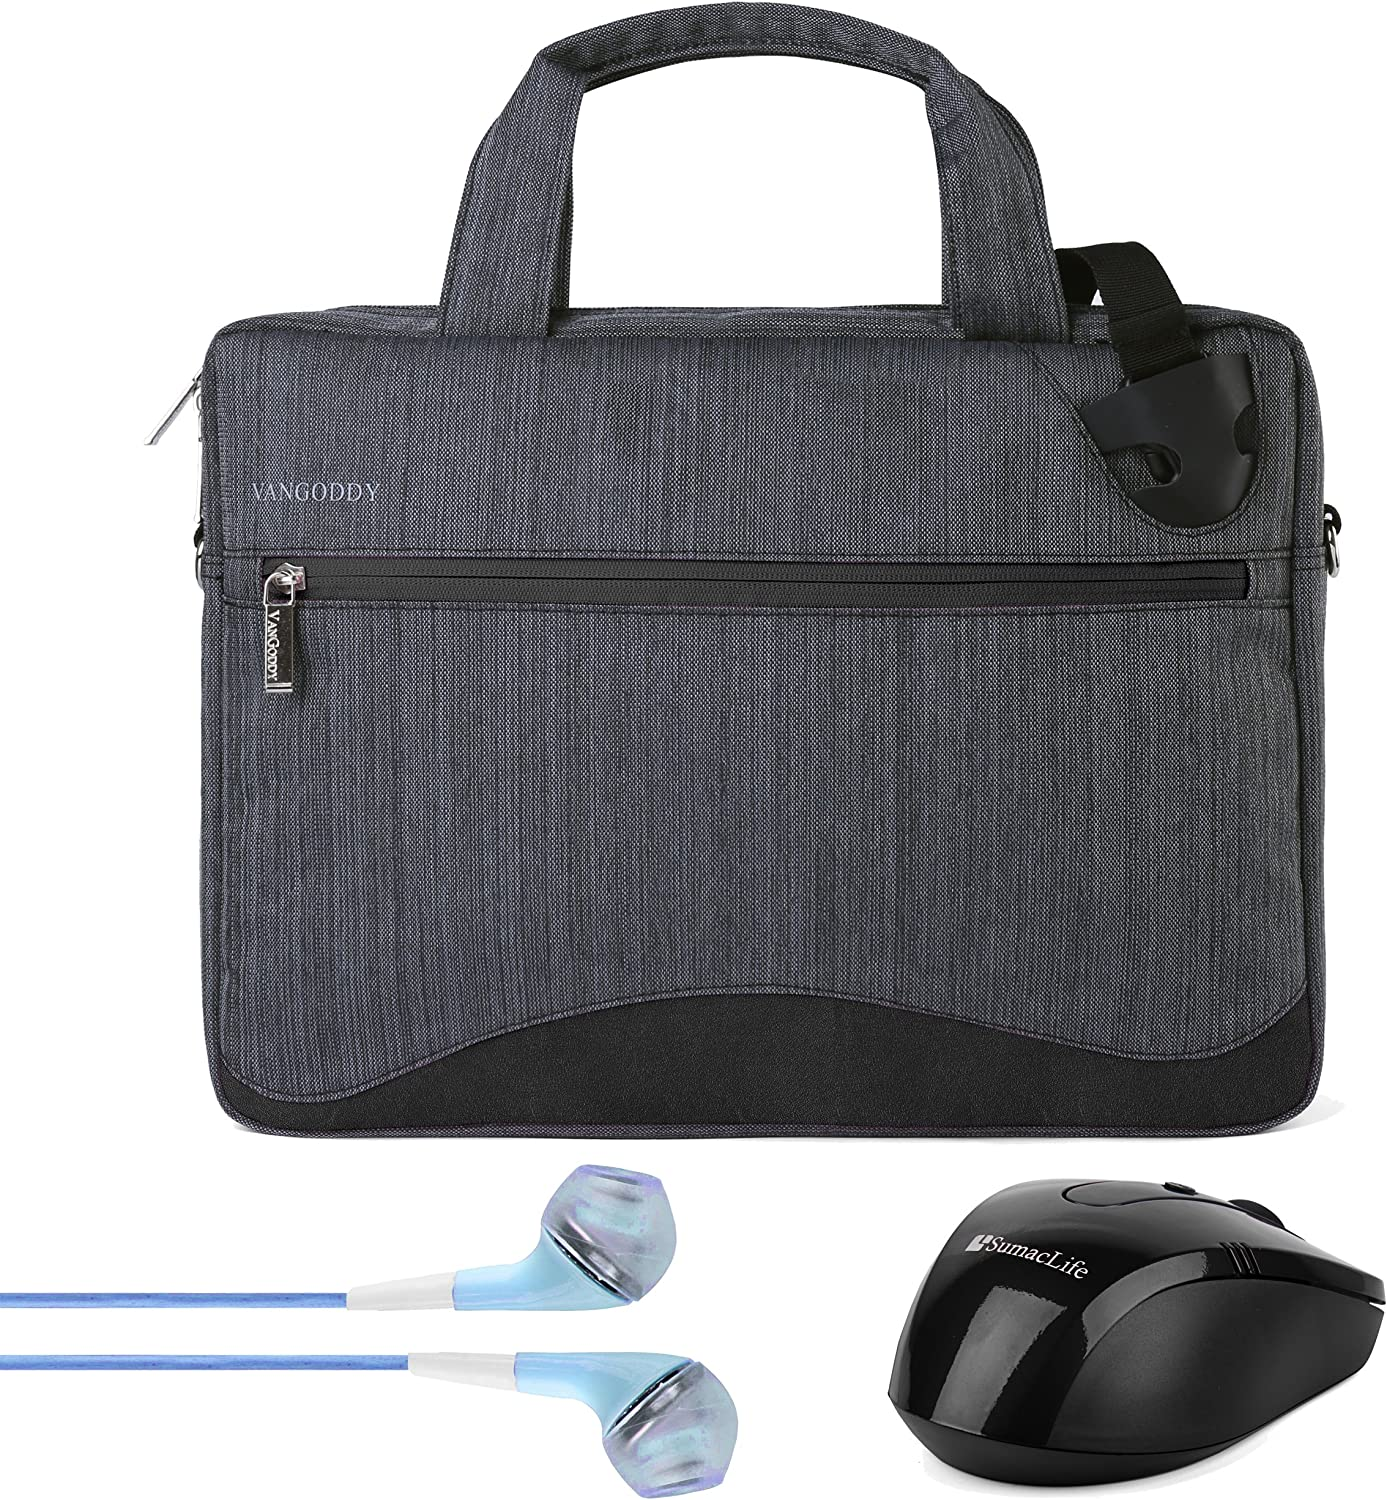 17 Inch Laptop Bag Nylon Water Resistant Anti Theft Messenger Bag for Acer Chromebook 15 15.6 inch, Aspire E, V Nitro, Asus X751, ROG Series 17.3 inch Laptop with Earphone and Wireless Mouse